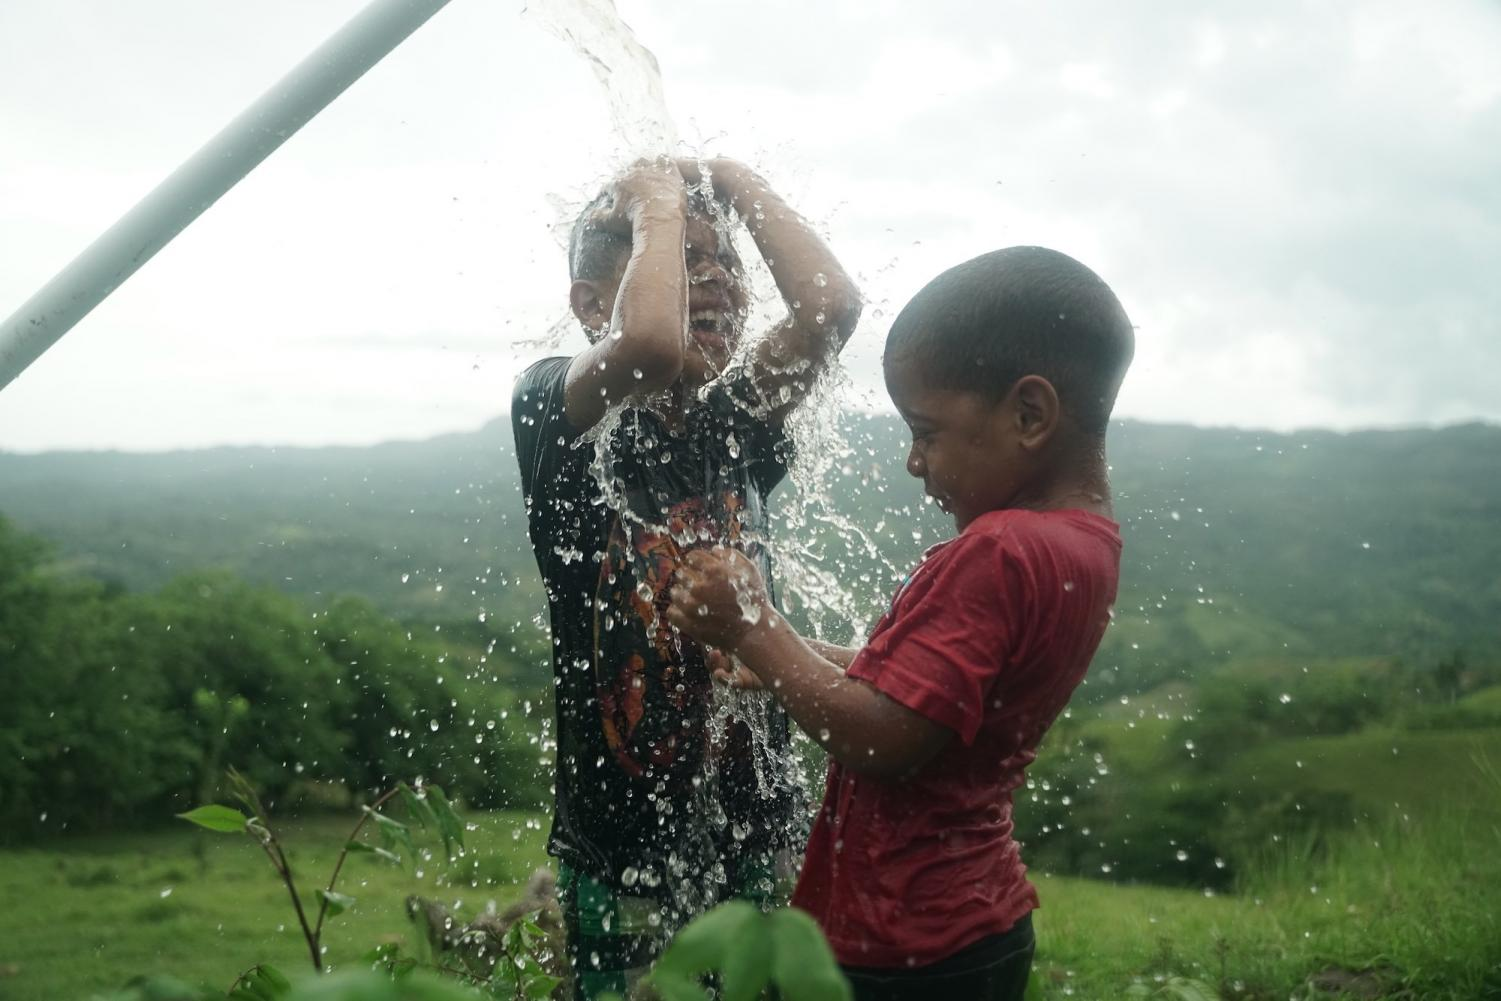 The+children+of+the+Dominican+Republic+celebrating+the+long-awaited+arrival+of+water+day.